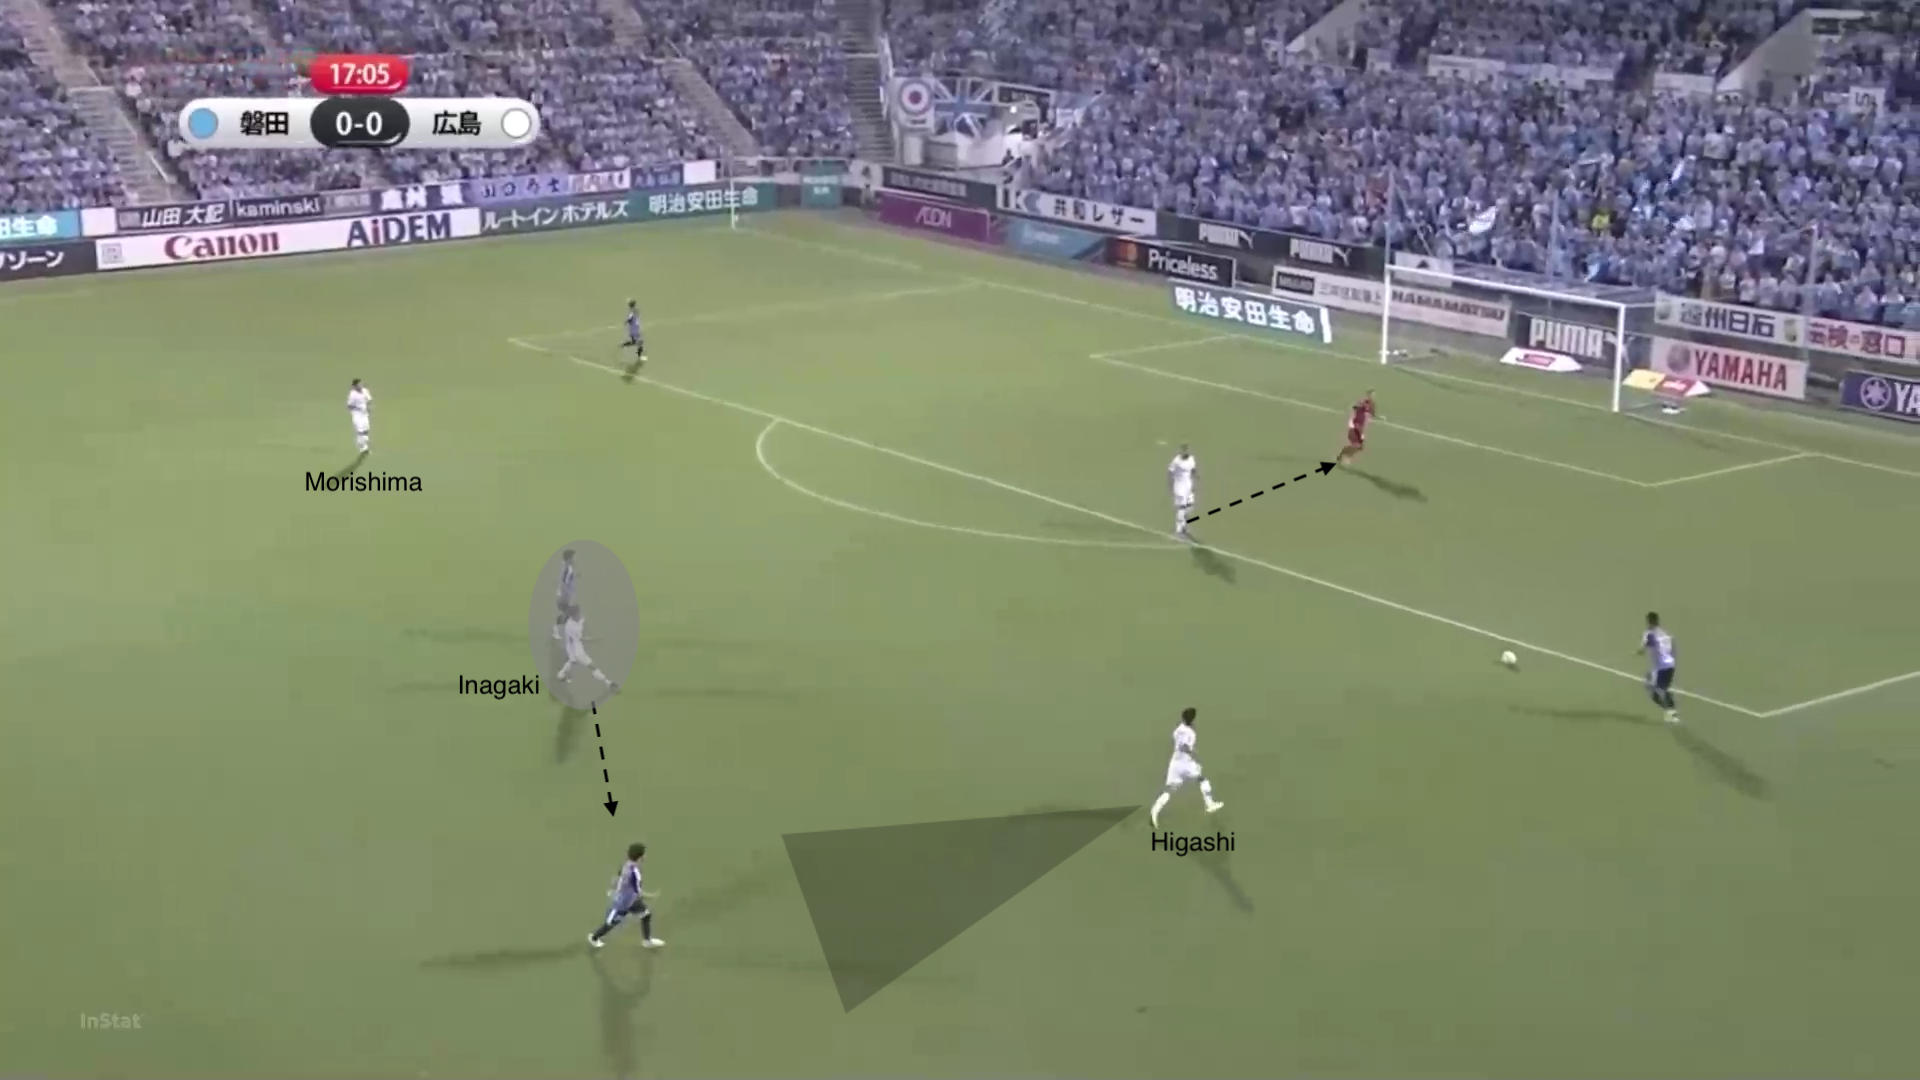 J1 League 2020: Jubilo Iwato vs Sanfrecce Hiroshima - tactical analysis tactics